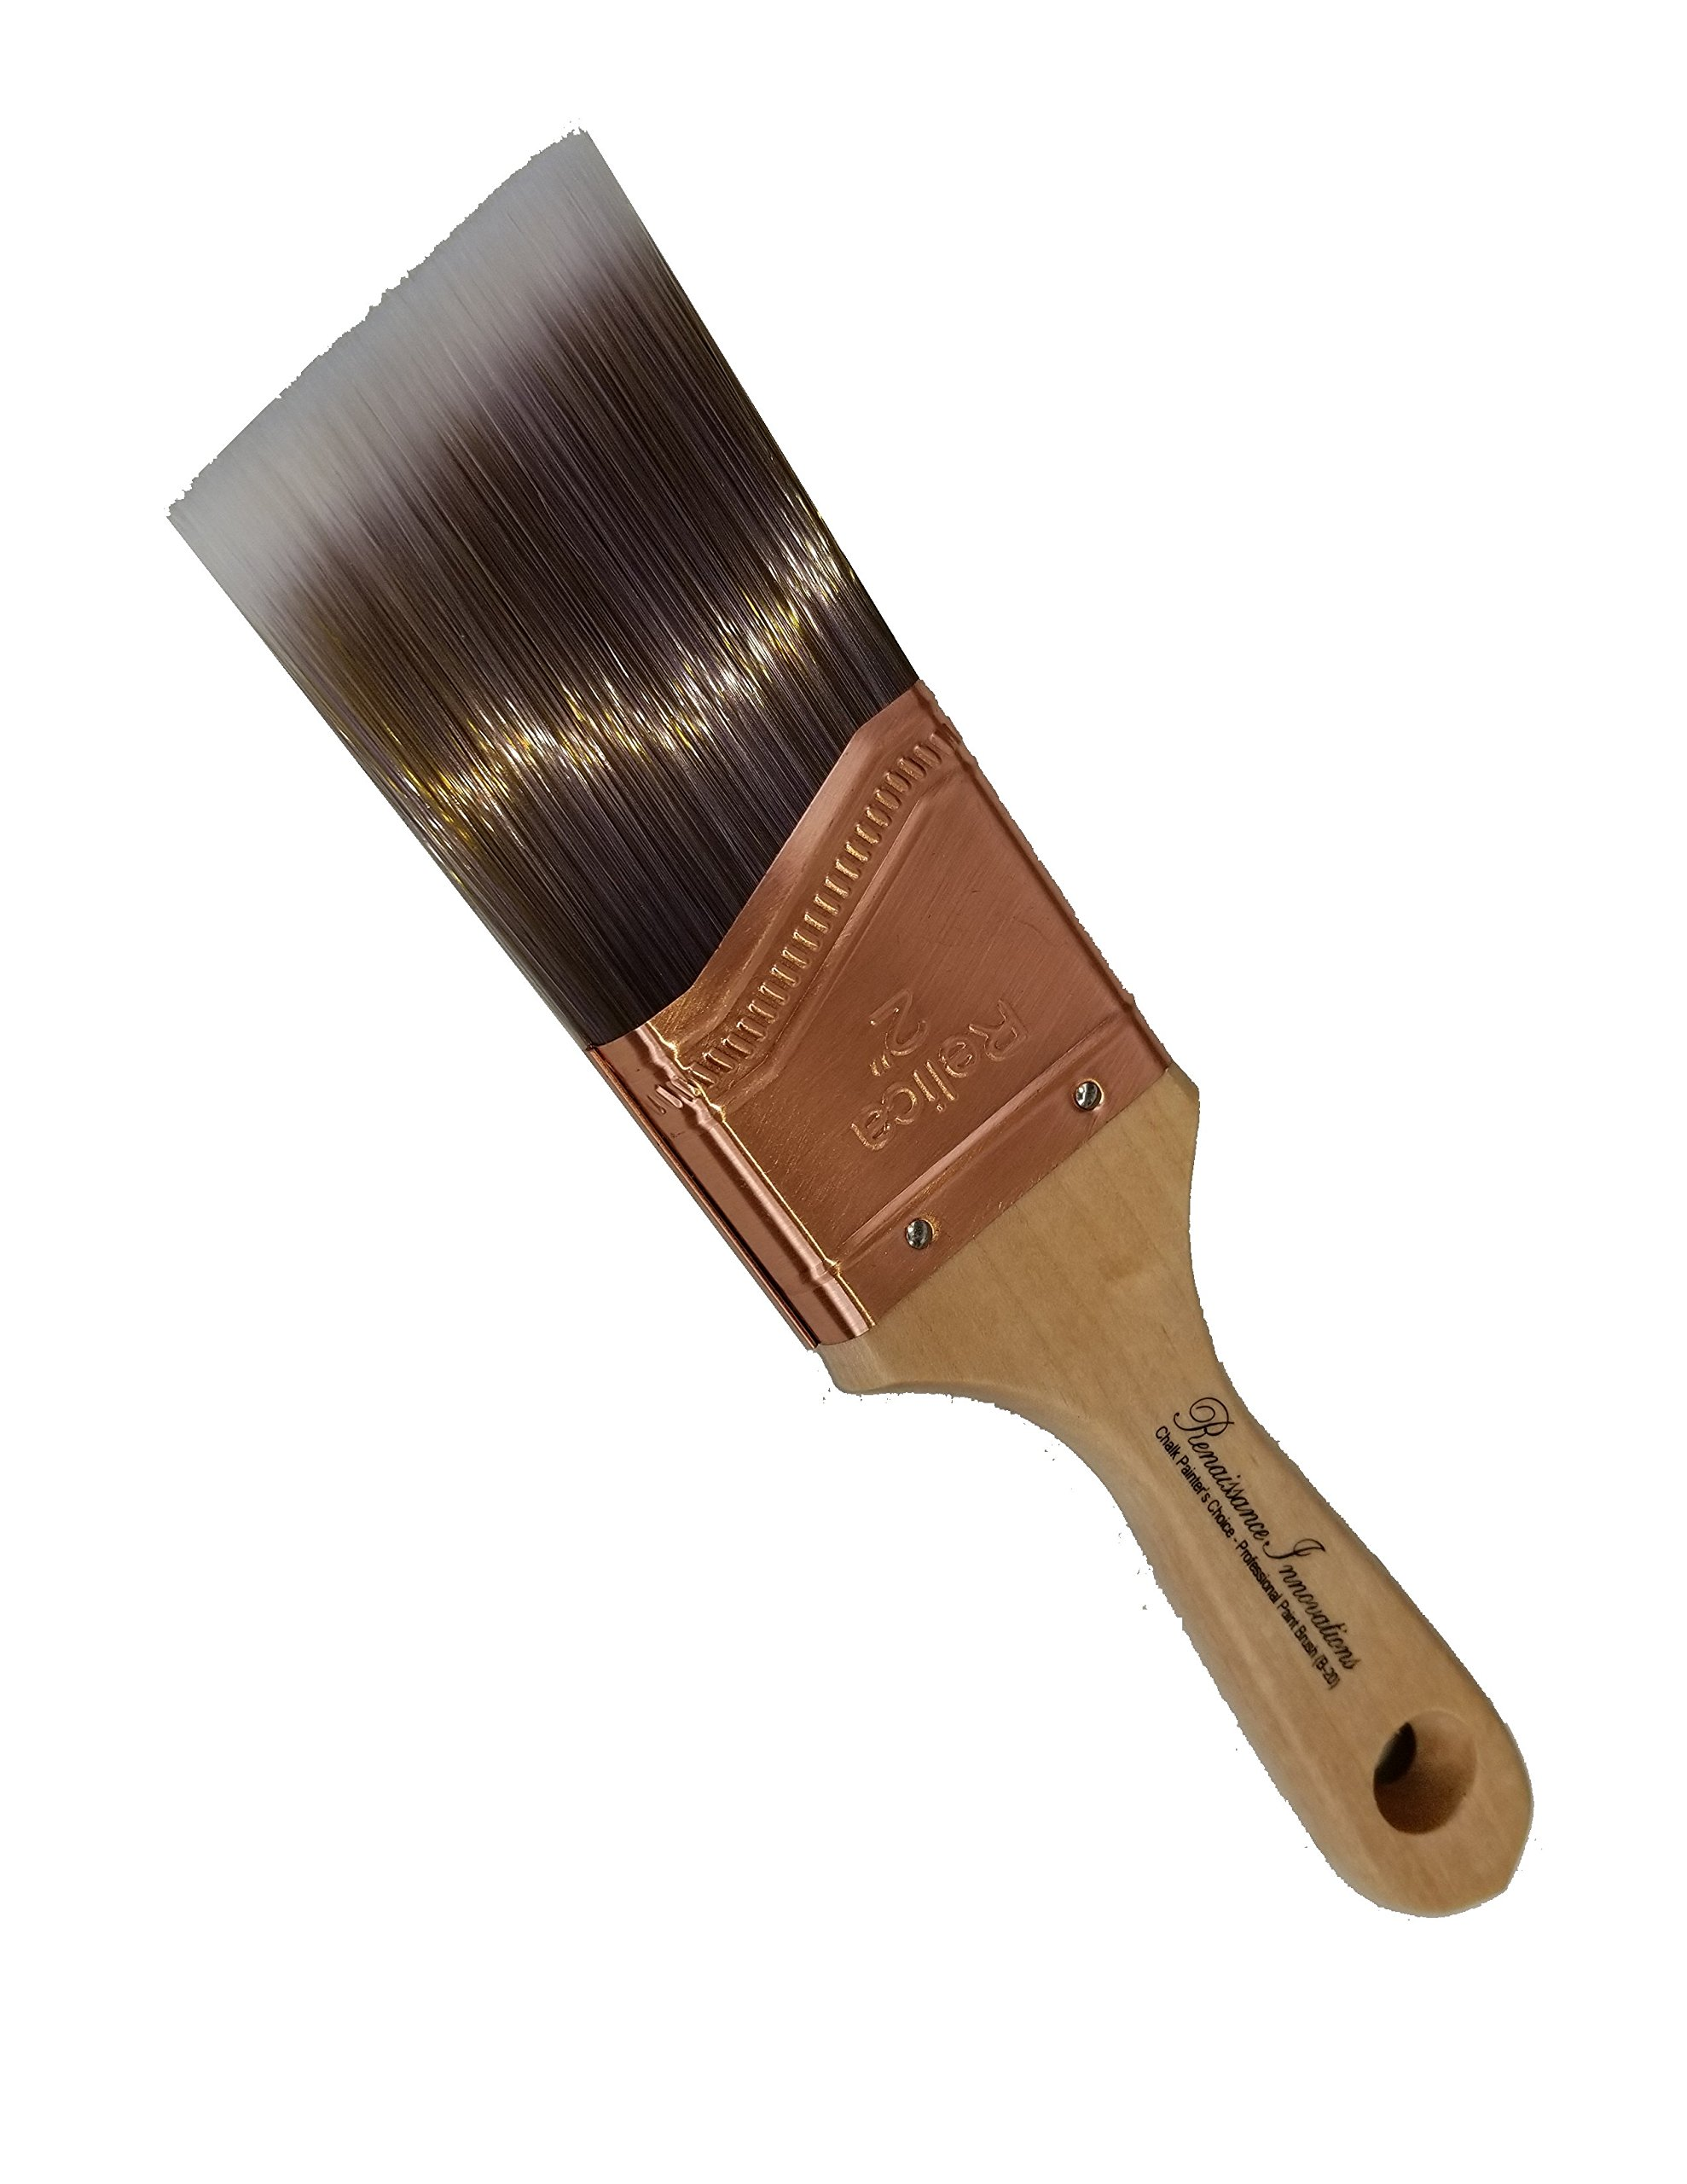 Chalk Painter's Choice - Professional Chalk Paint Brush (B20) by Relica